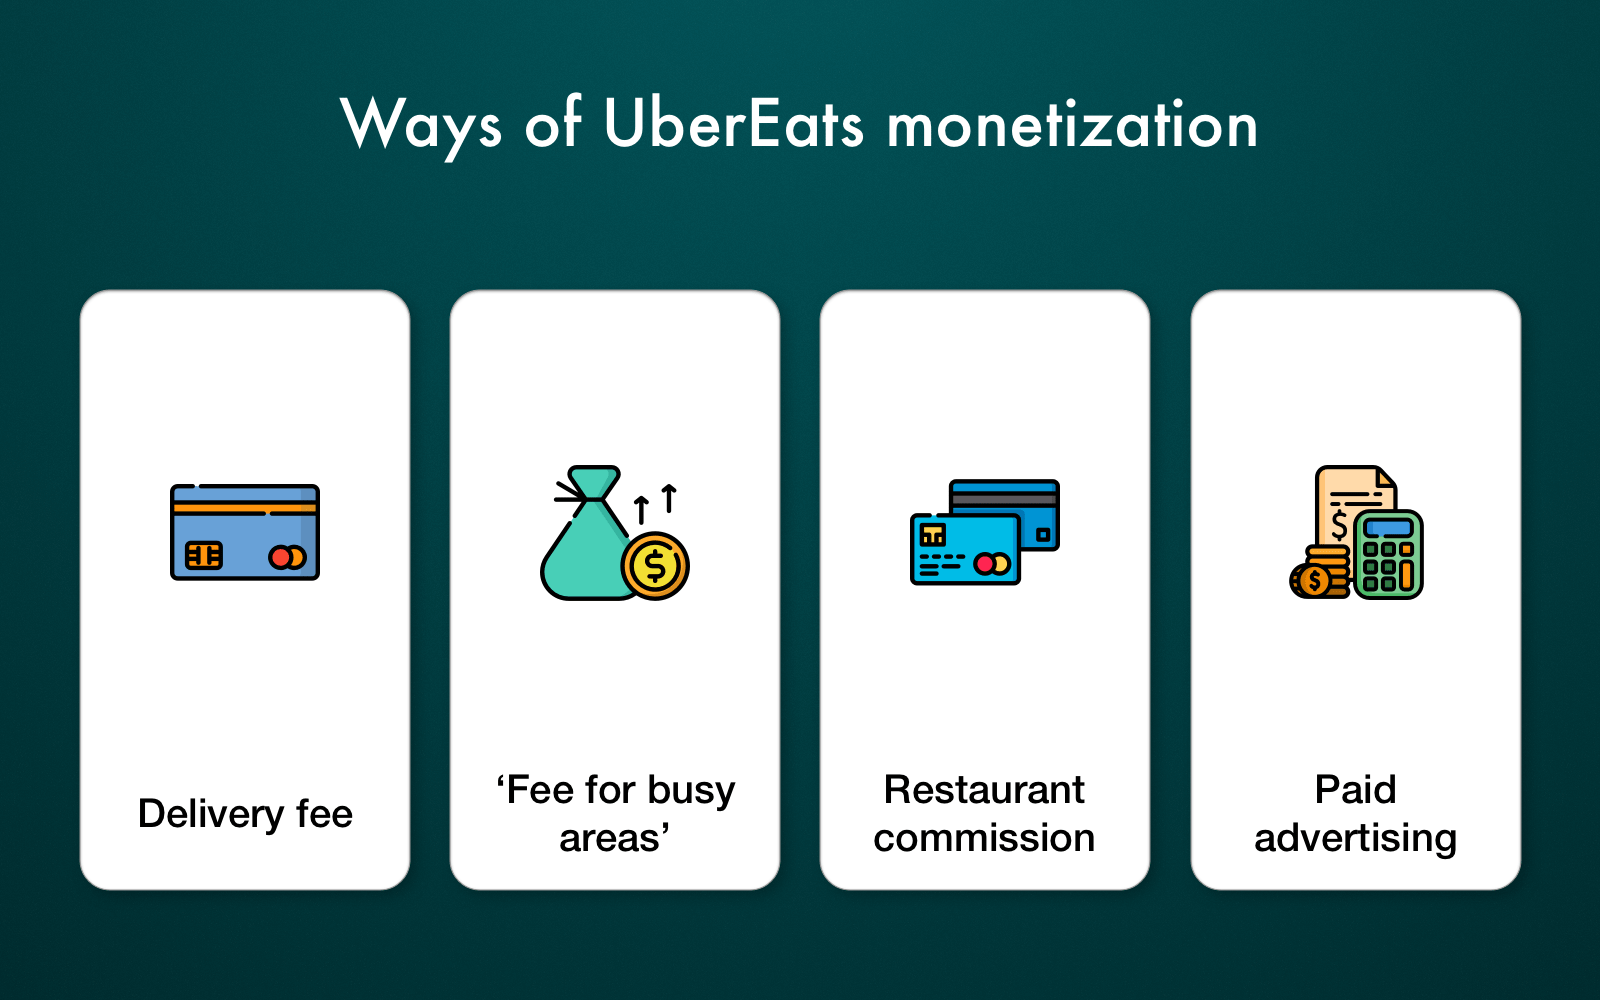 How UberEats monetize their services